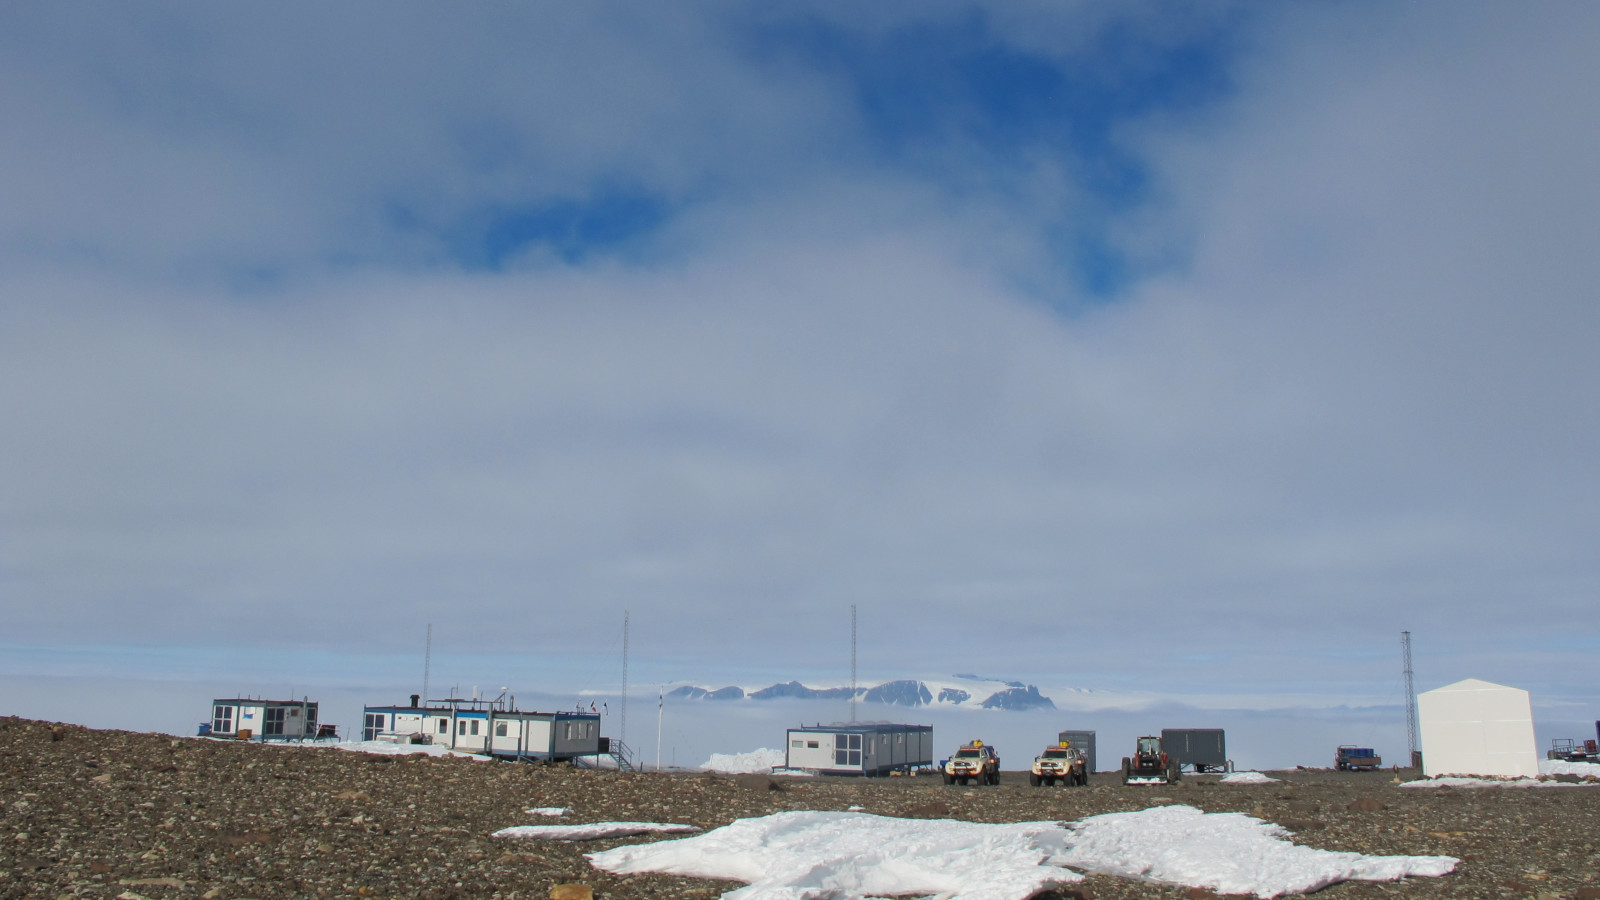 Containers and vehicles in an antarctic landsscape.